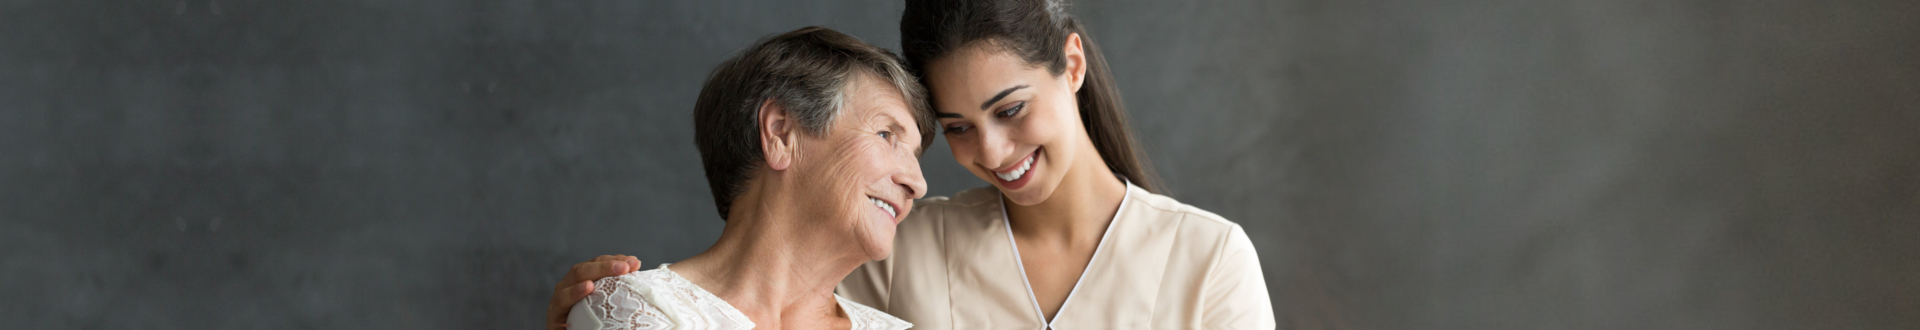 senior woman with female caregiver smiling